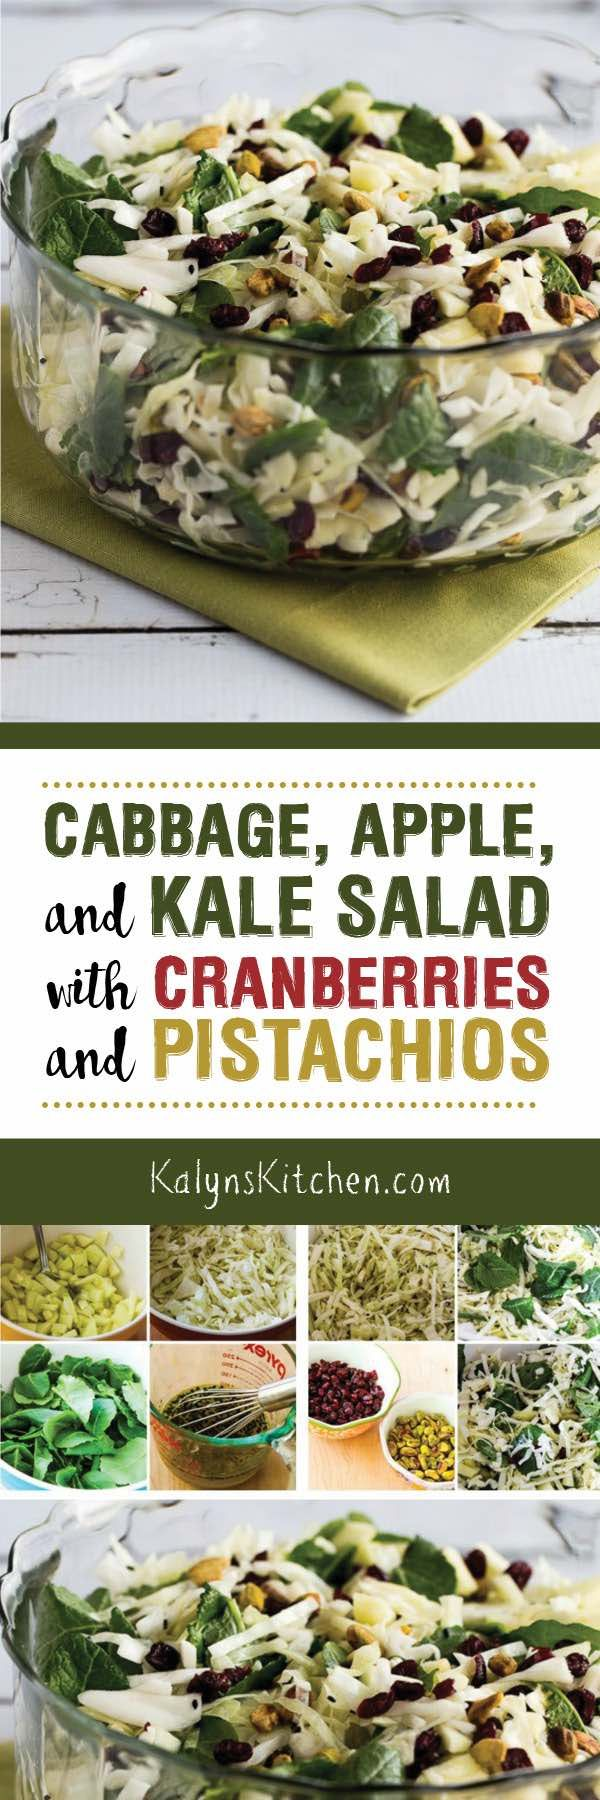 Cabbage, Apple, and Kale Salad with Cranberries and Pistachios is a healthy and festive salad that's perfect for a holiday meal but also nutritious enough to make regularly as a winter salad option! [found on KalynsKitchen.com] #WinterSalad #CabbageSalad #HolidaySalad #HolidayCabbageSalad